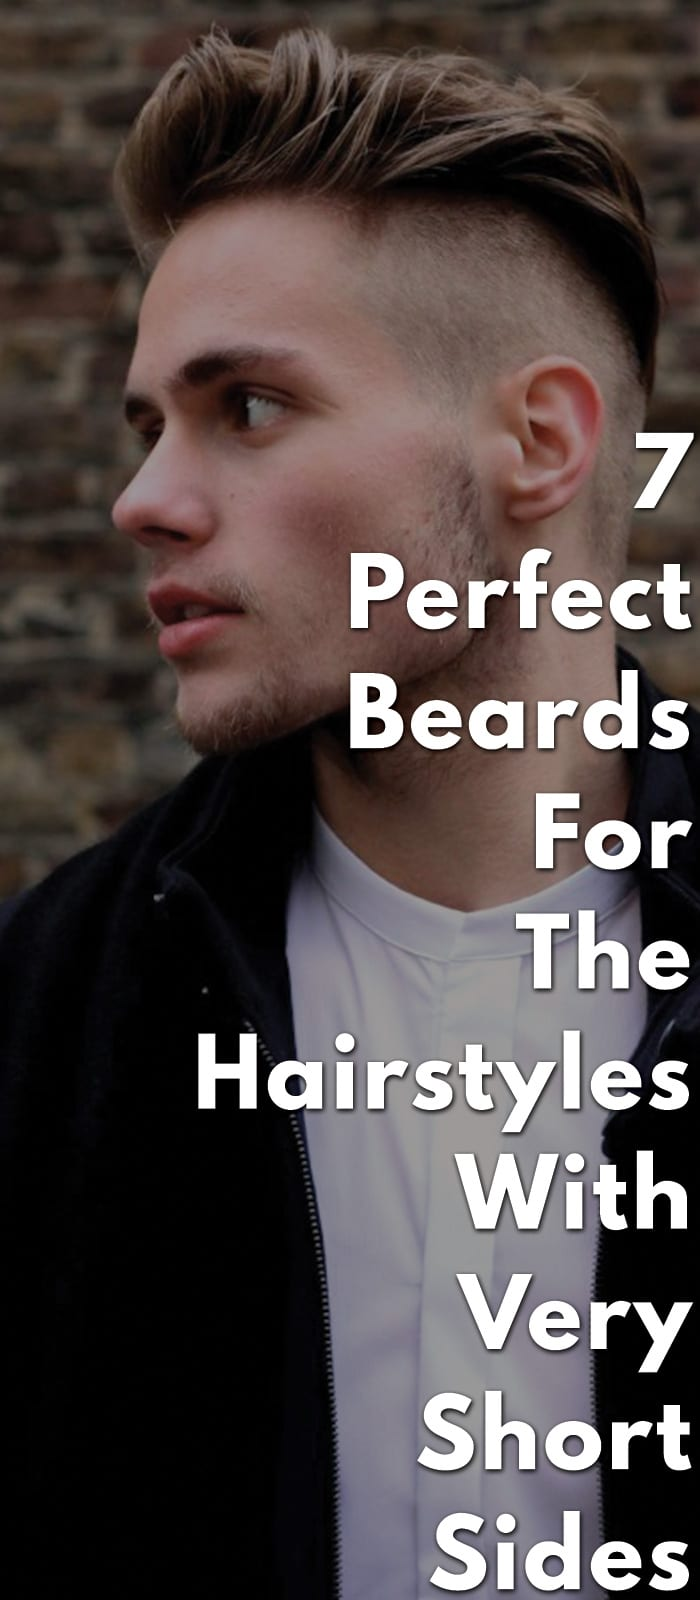 7-Perfect-Beards-For-The-Hairstyles-With-Very-Short-Sides..